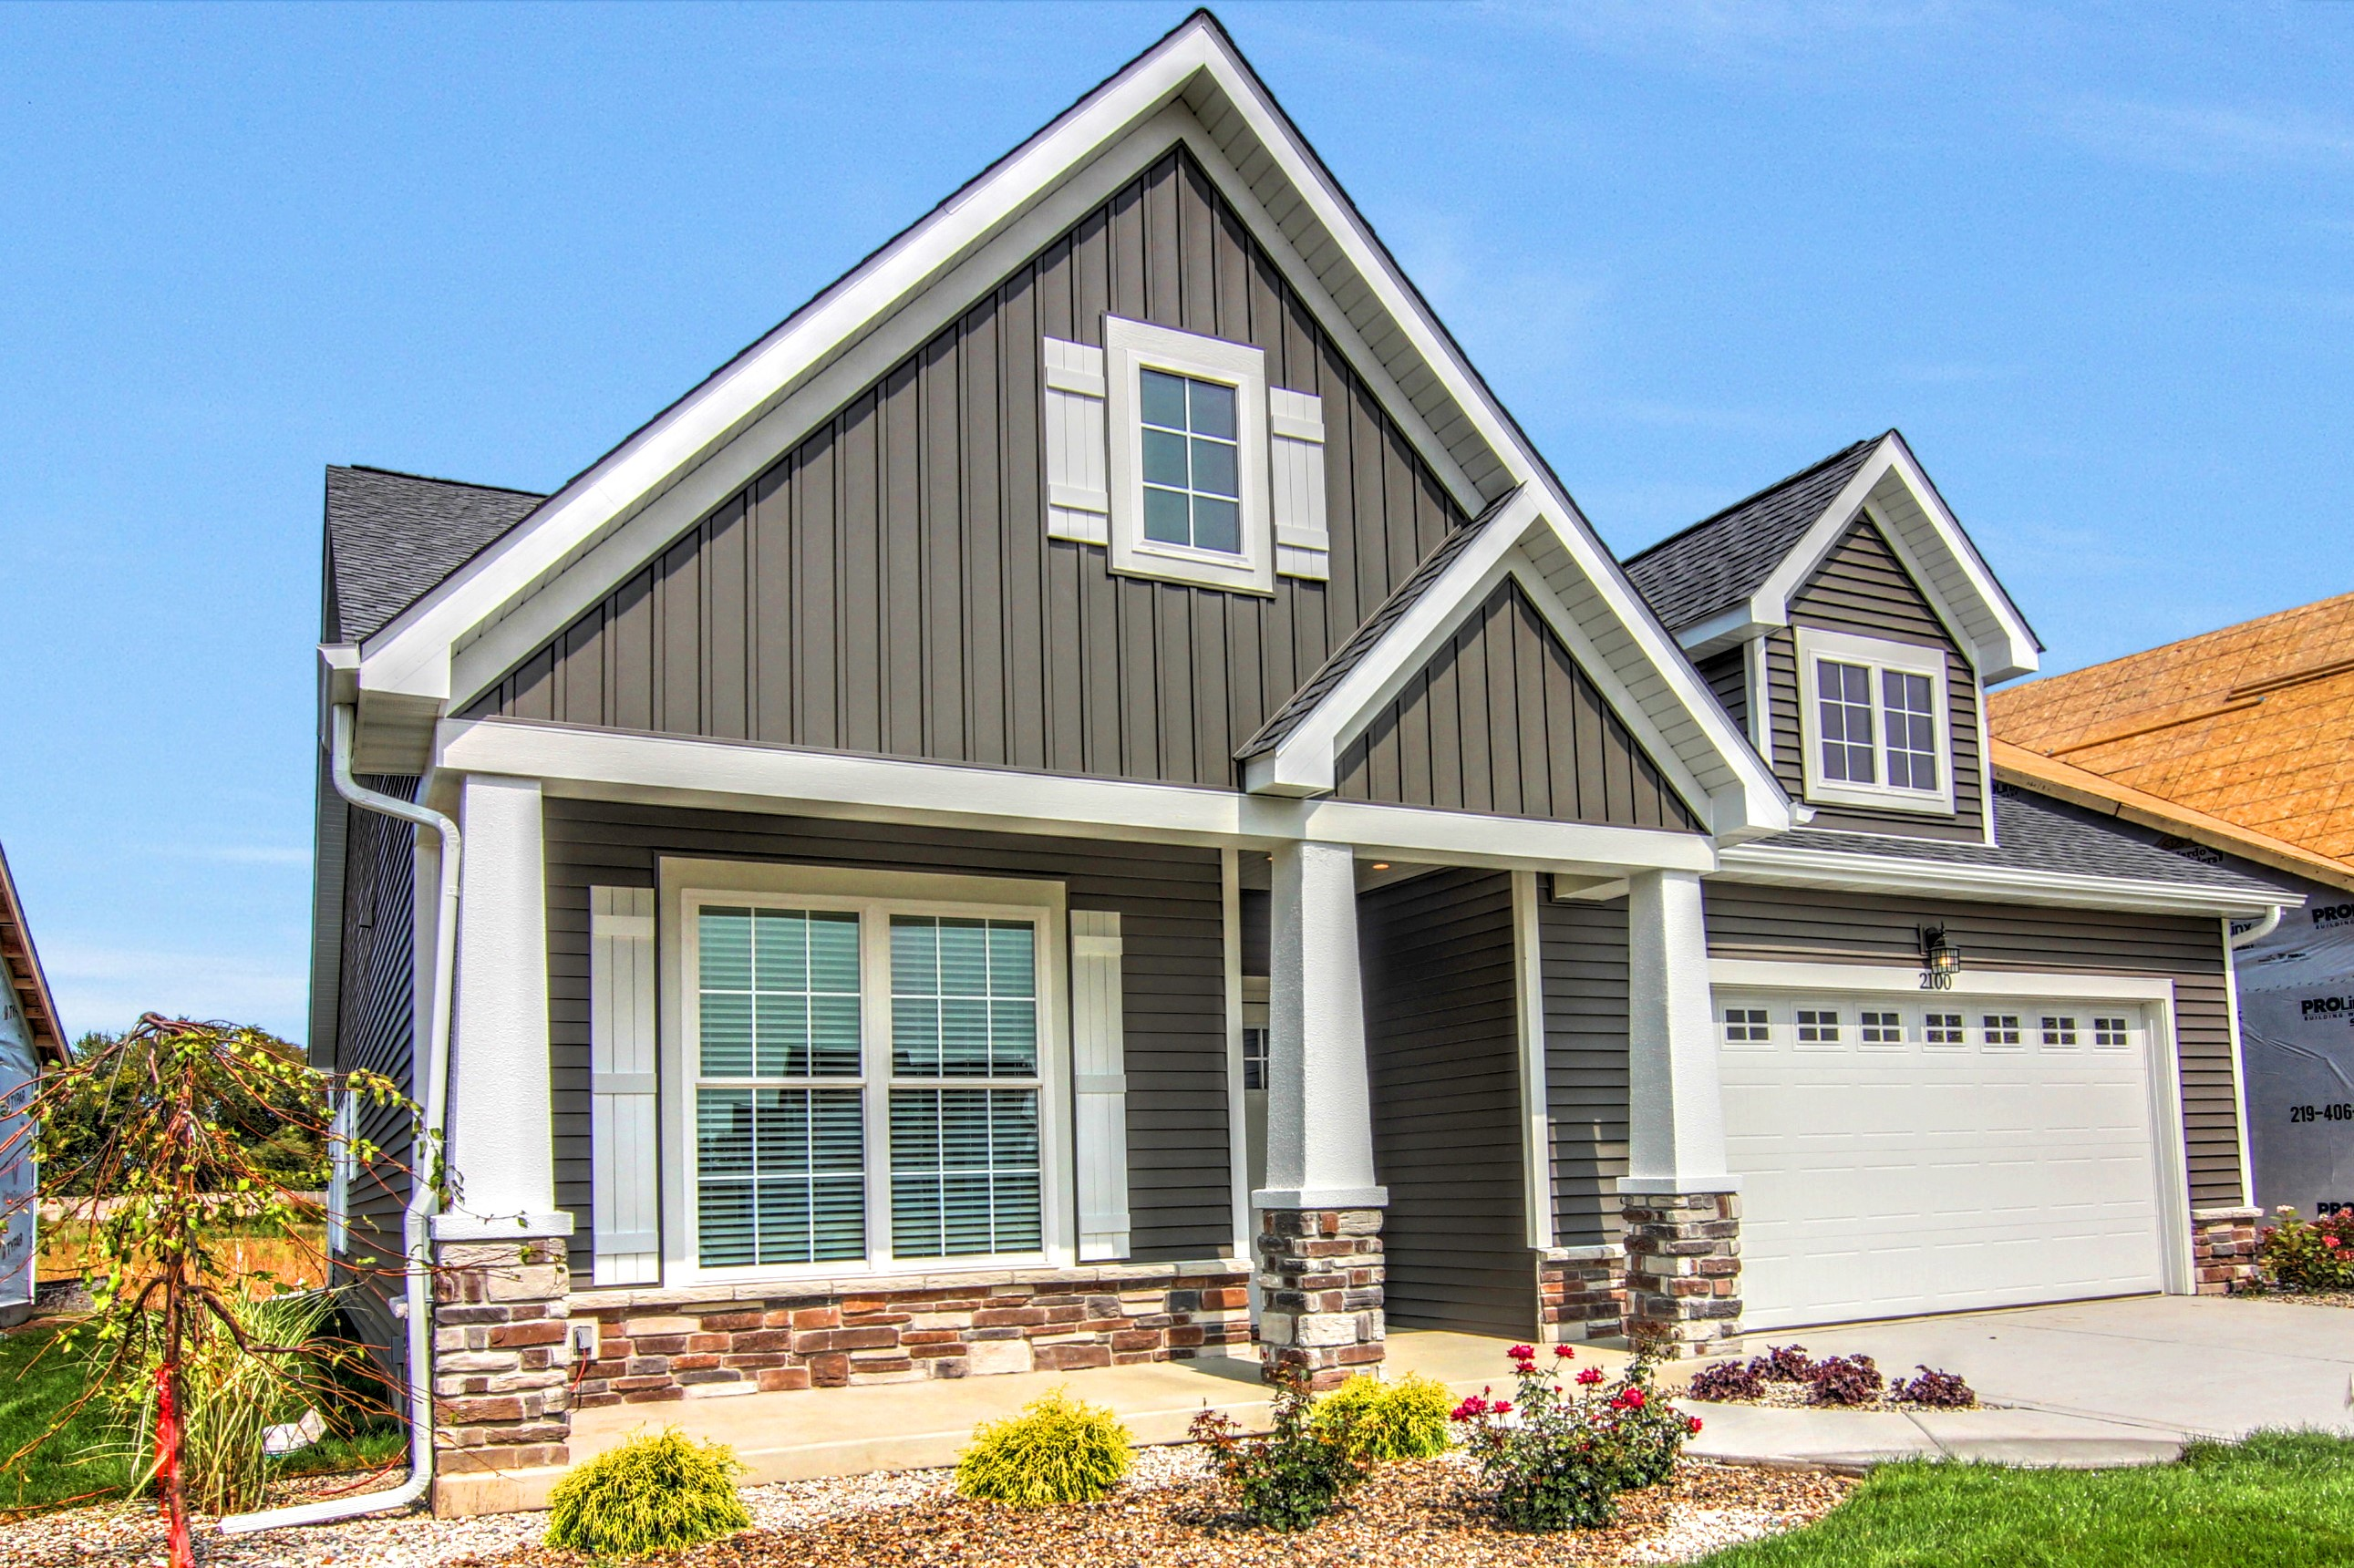 Nardo custom new home builders new homes for sale in for House builders in indiana